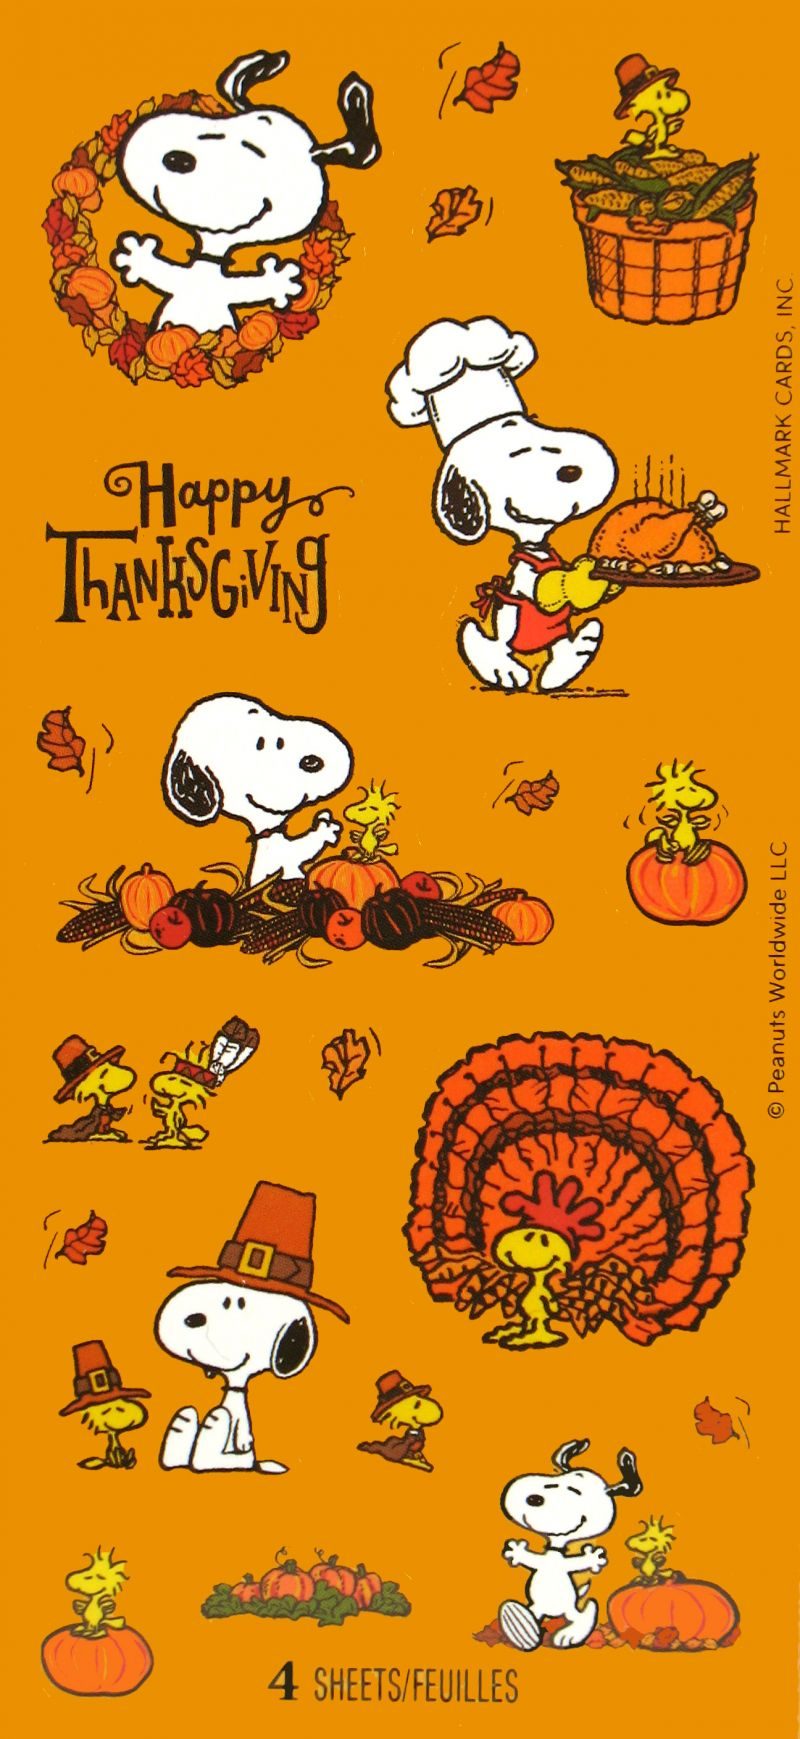 Source Peanuts Gang Halloween Clipart   Free Clip Art Images